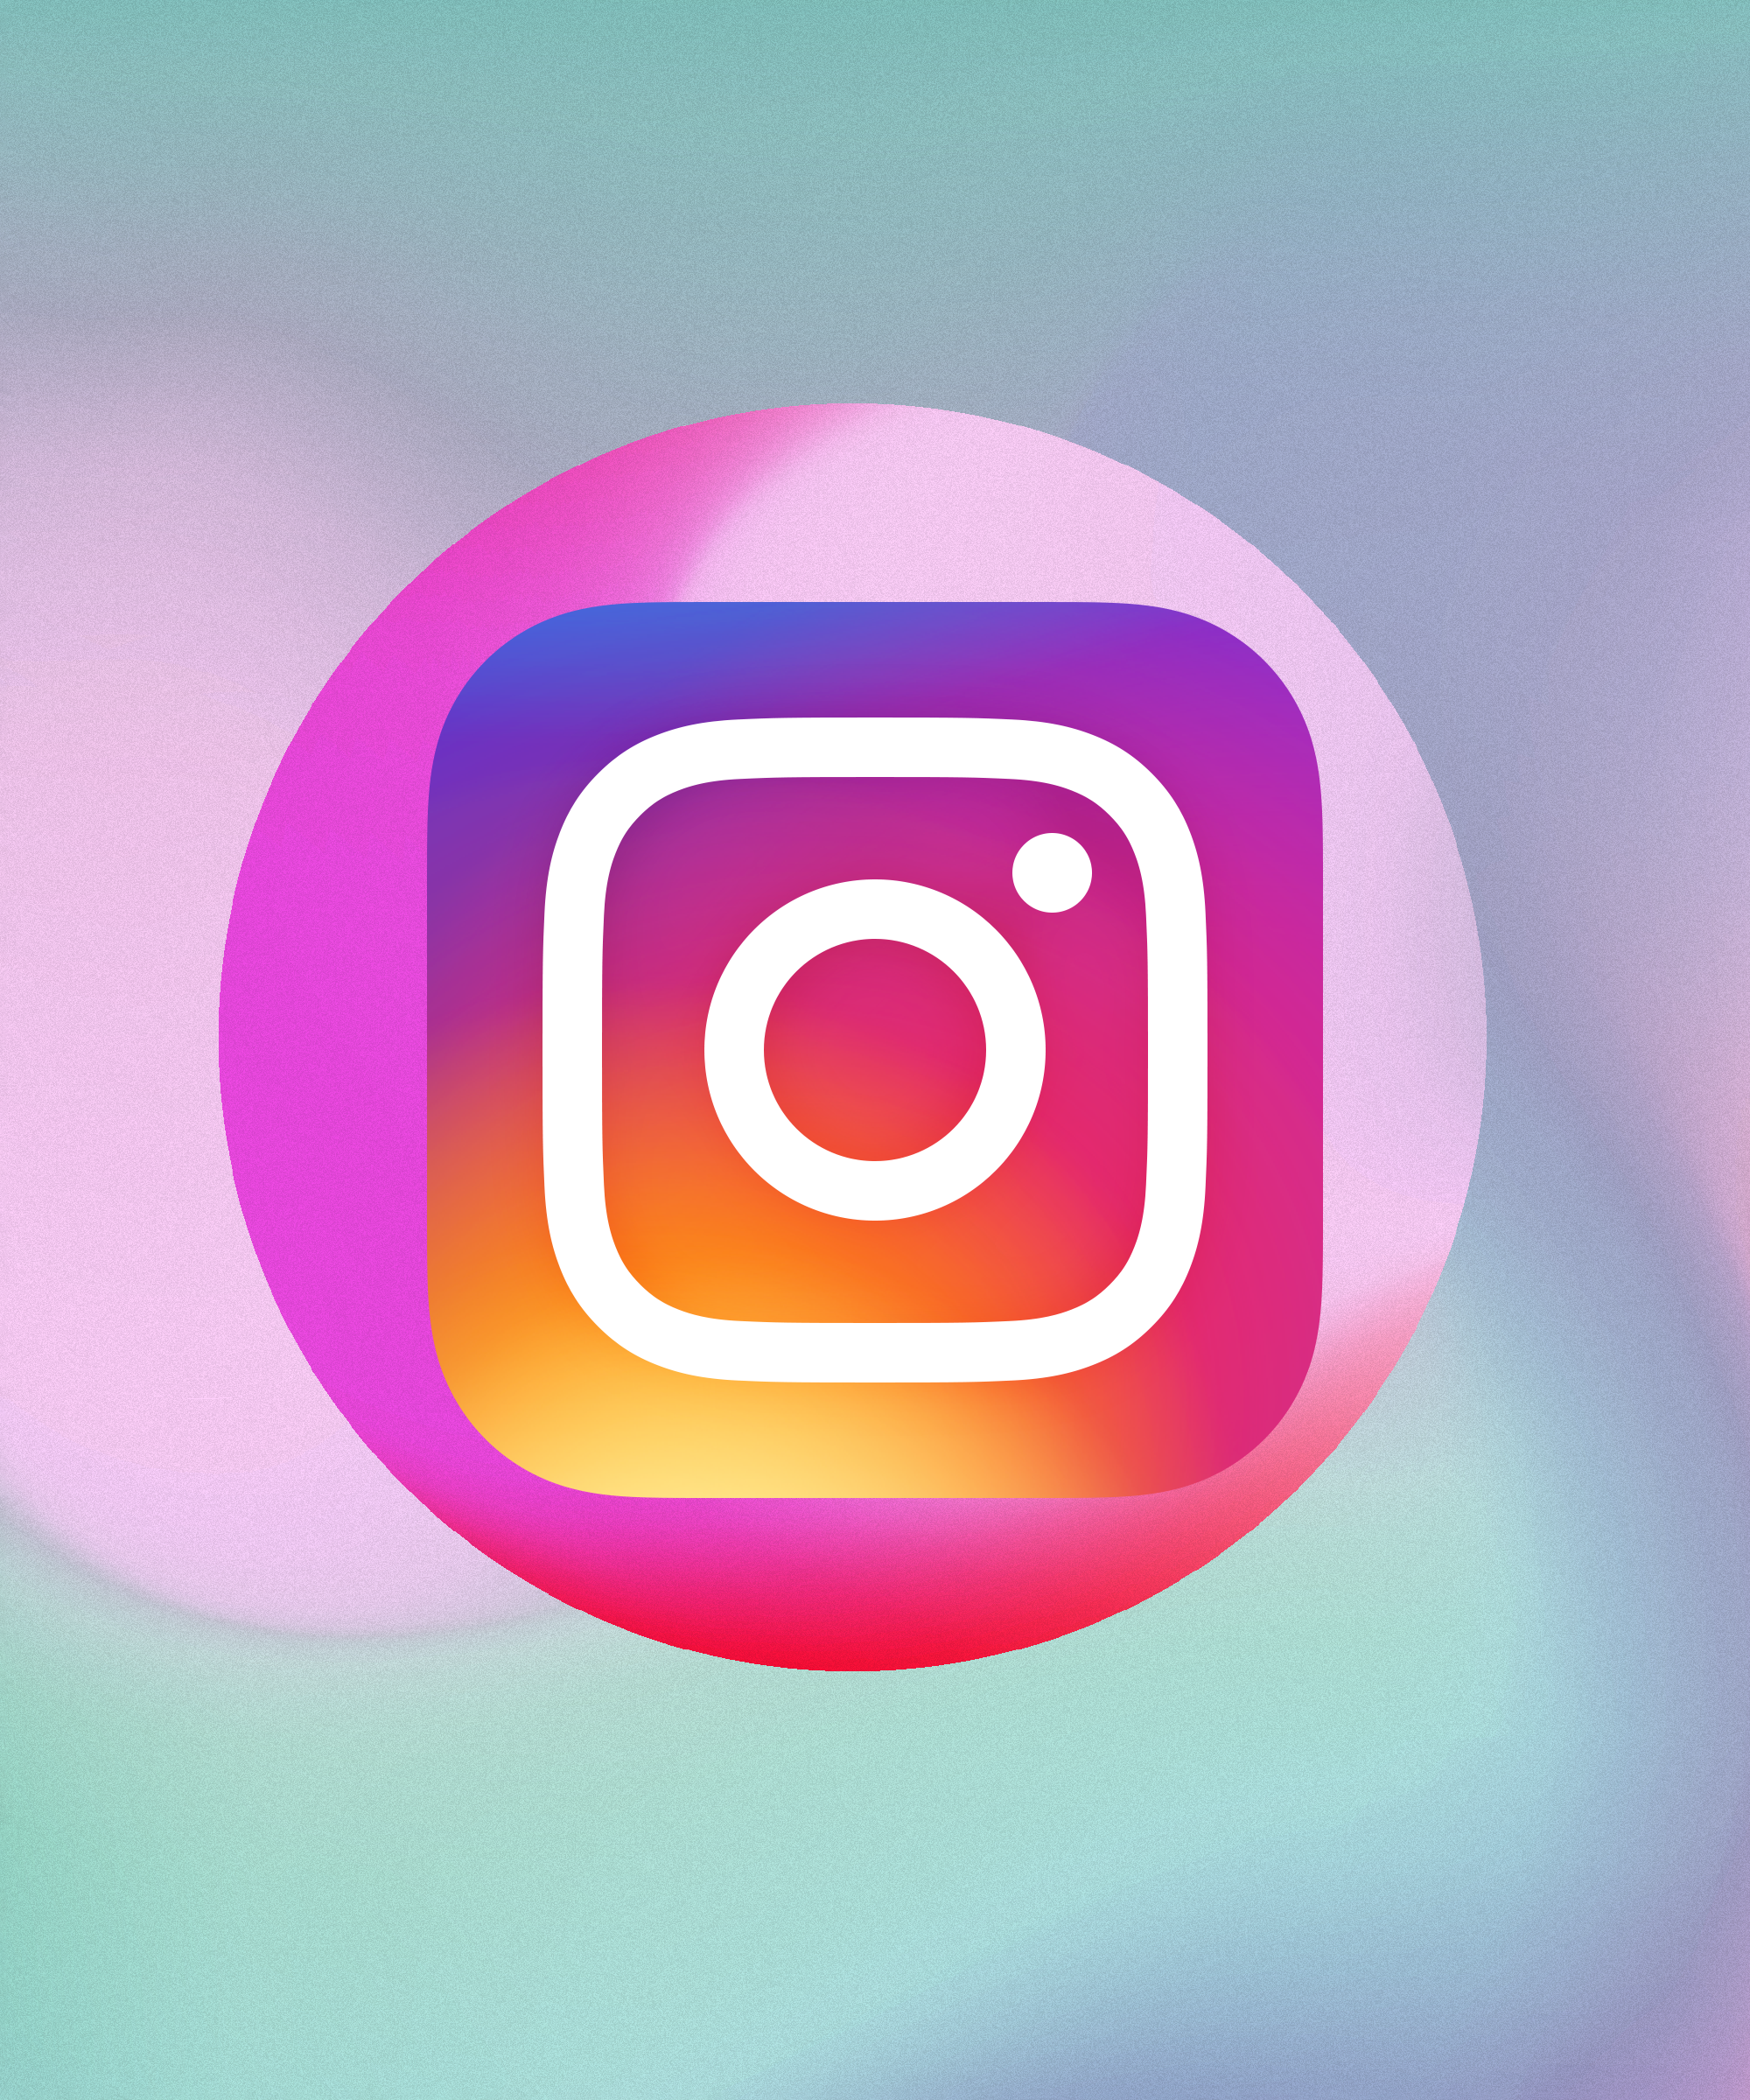 Instagram is Introducing Shopping Integration for Brands